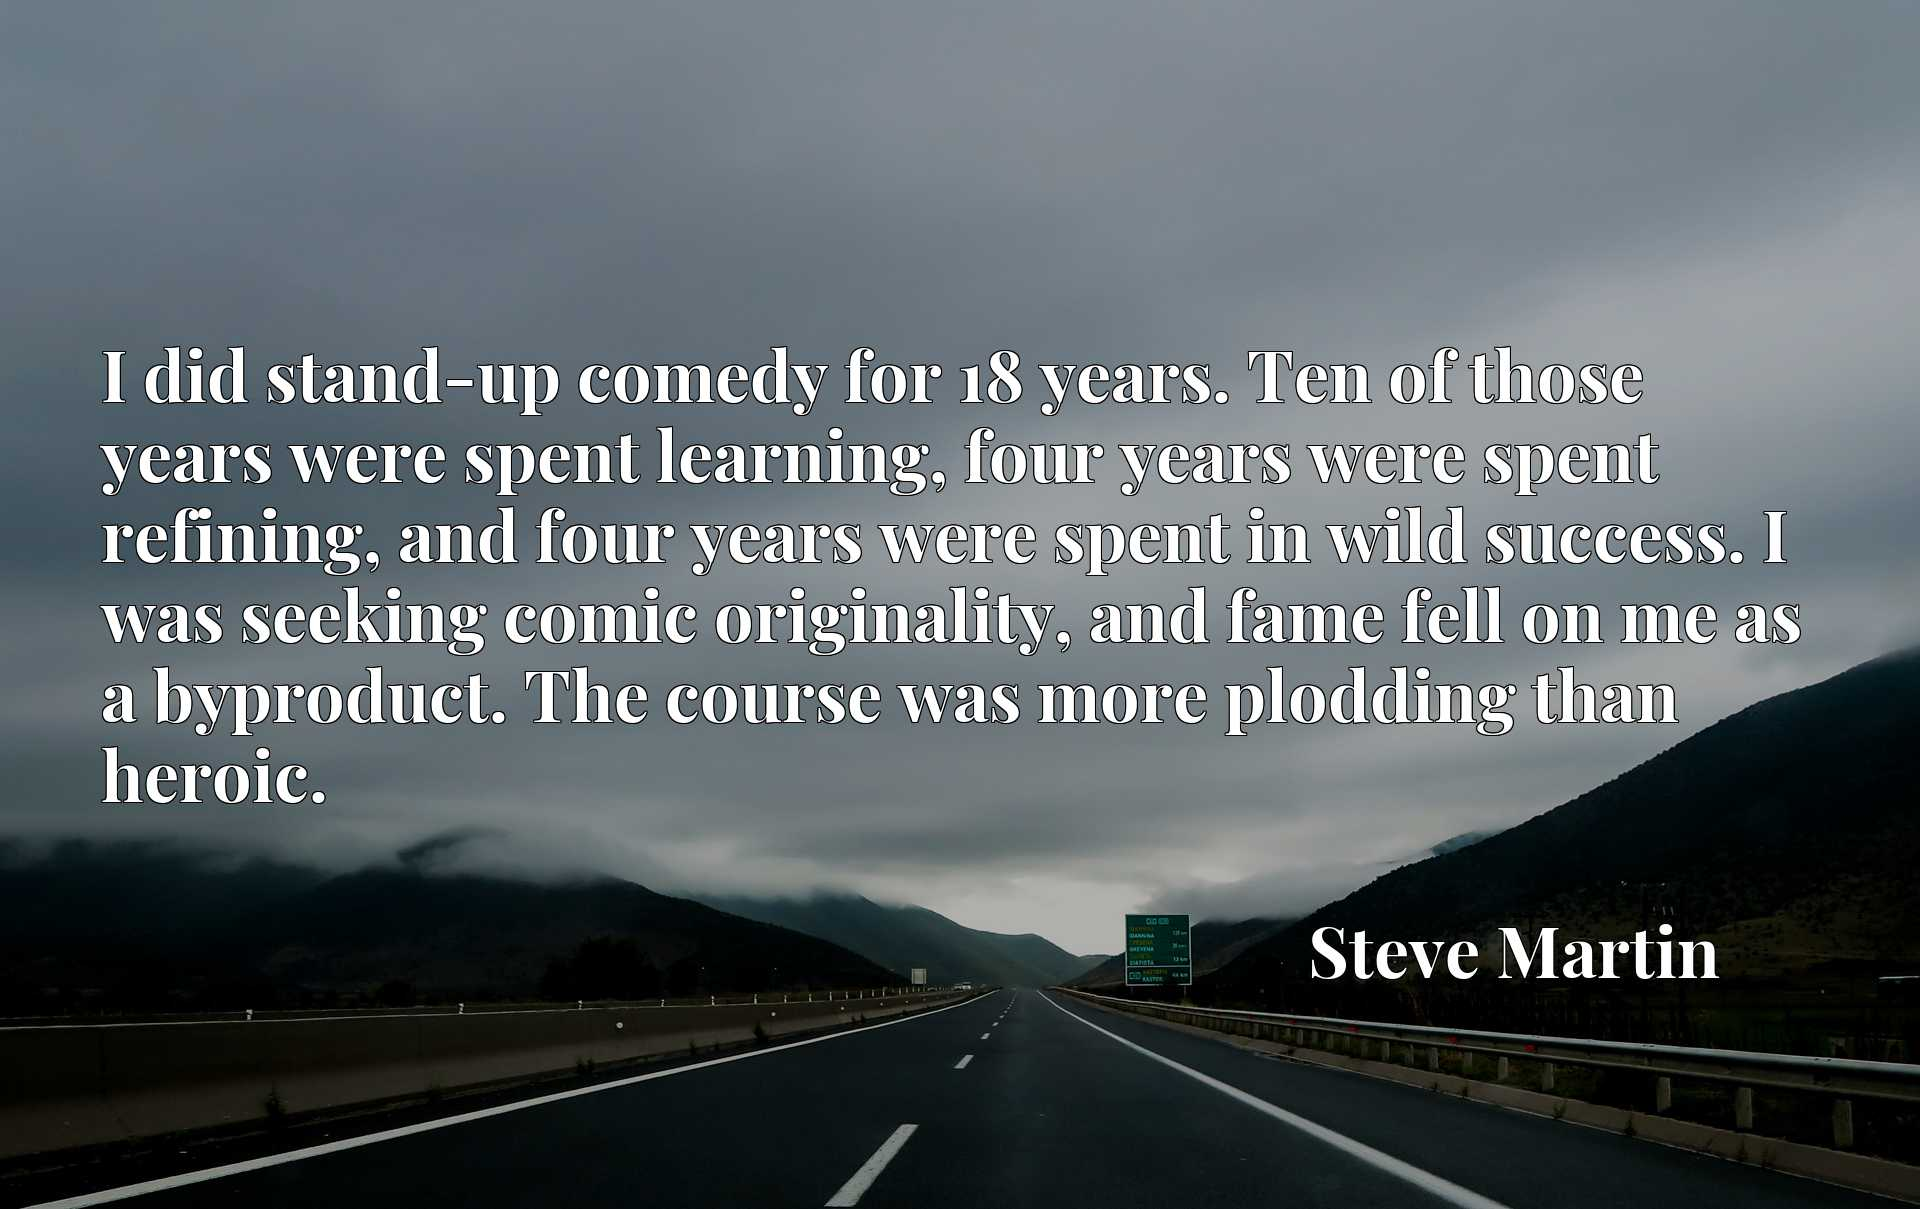 I did stand-up comedy for 18 years. Ten of those years were spent learning, four years were spent refining, and four years were spent in wild success. I was seeking comic originality, and fame fell on me as a byproduct. The course was more plodding than heroic.